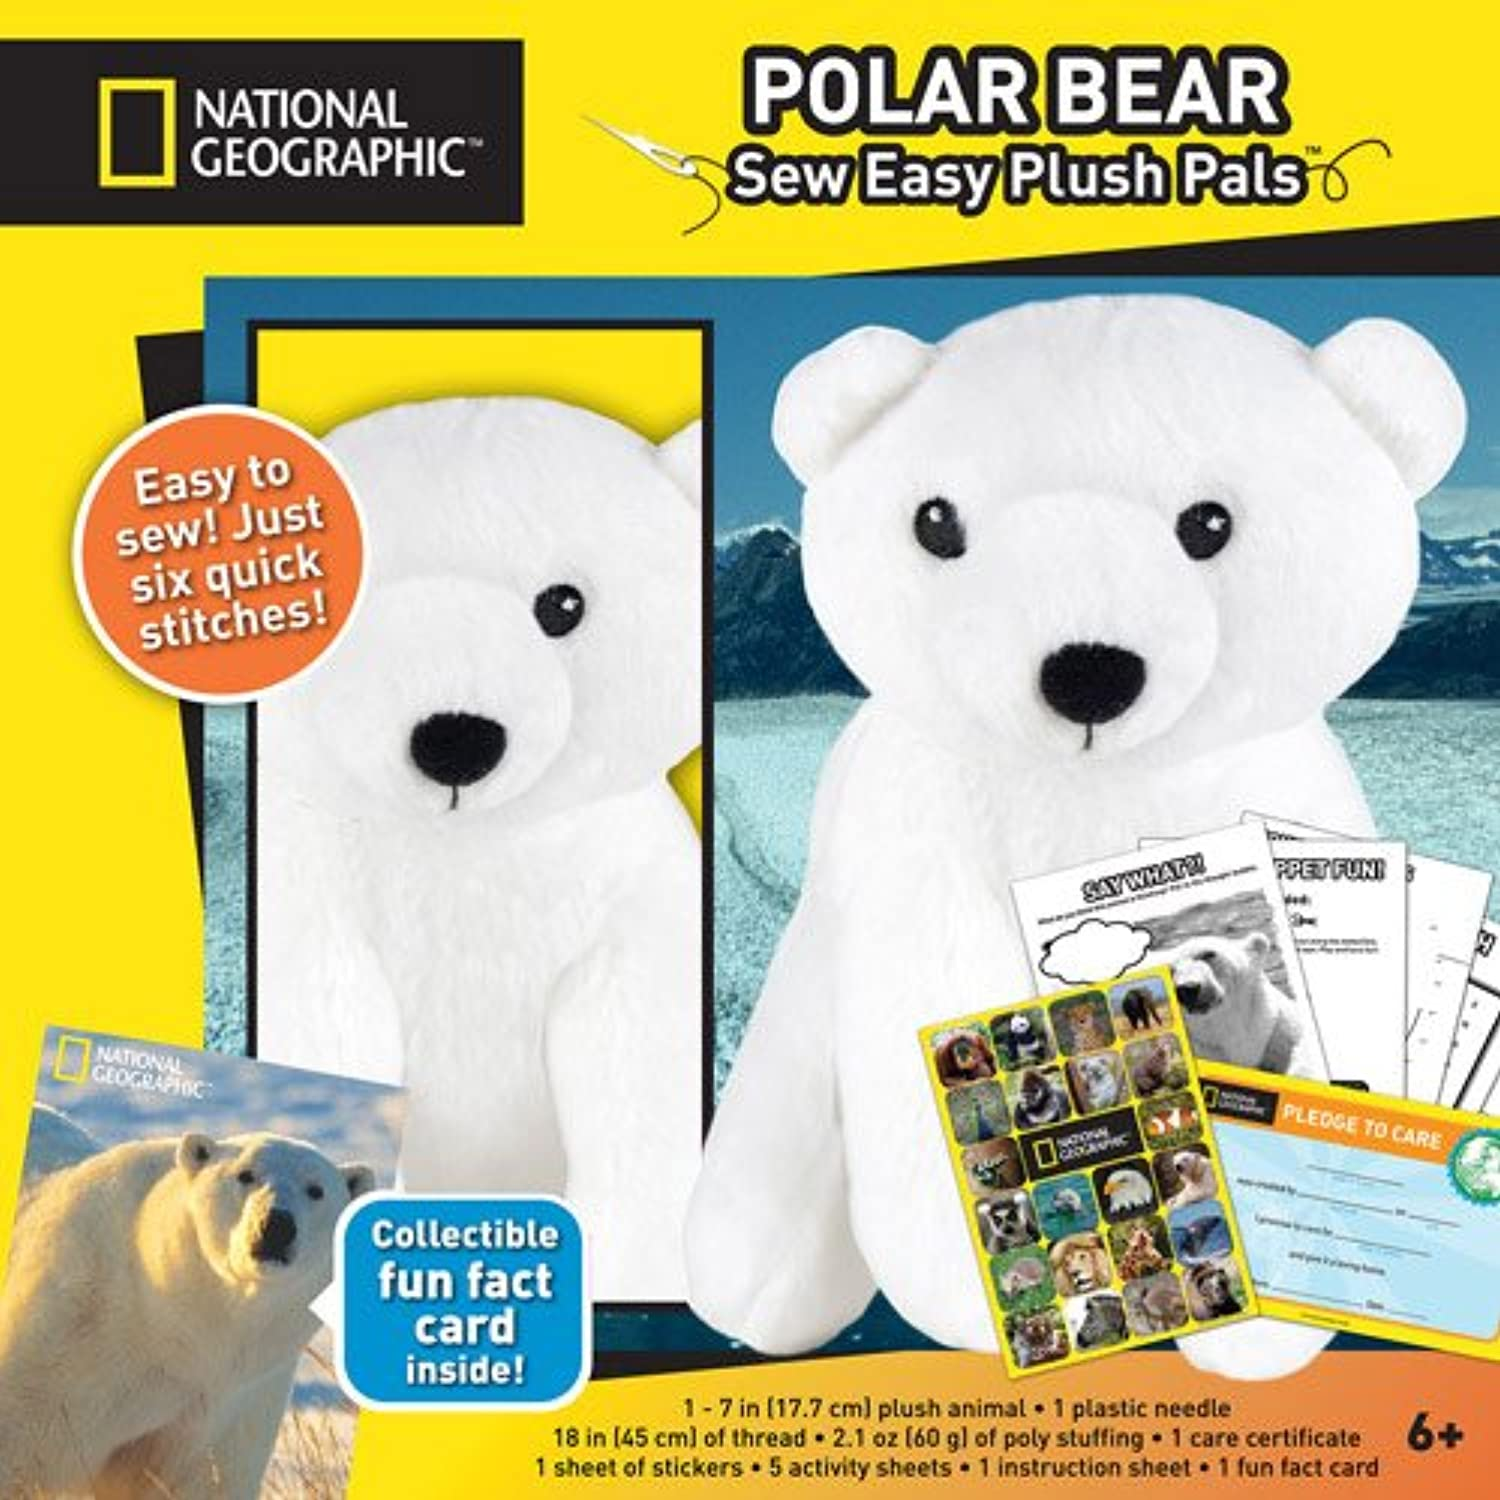 National Geographic Sew Easy Plush Pals Polar Bear Cute make it toy